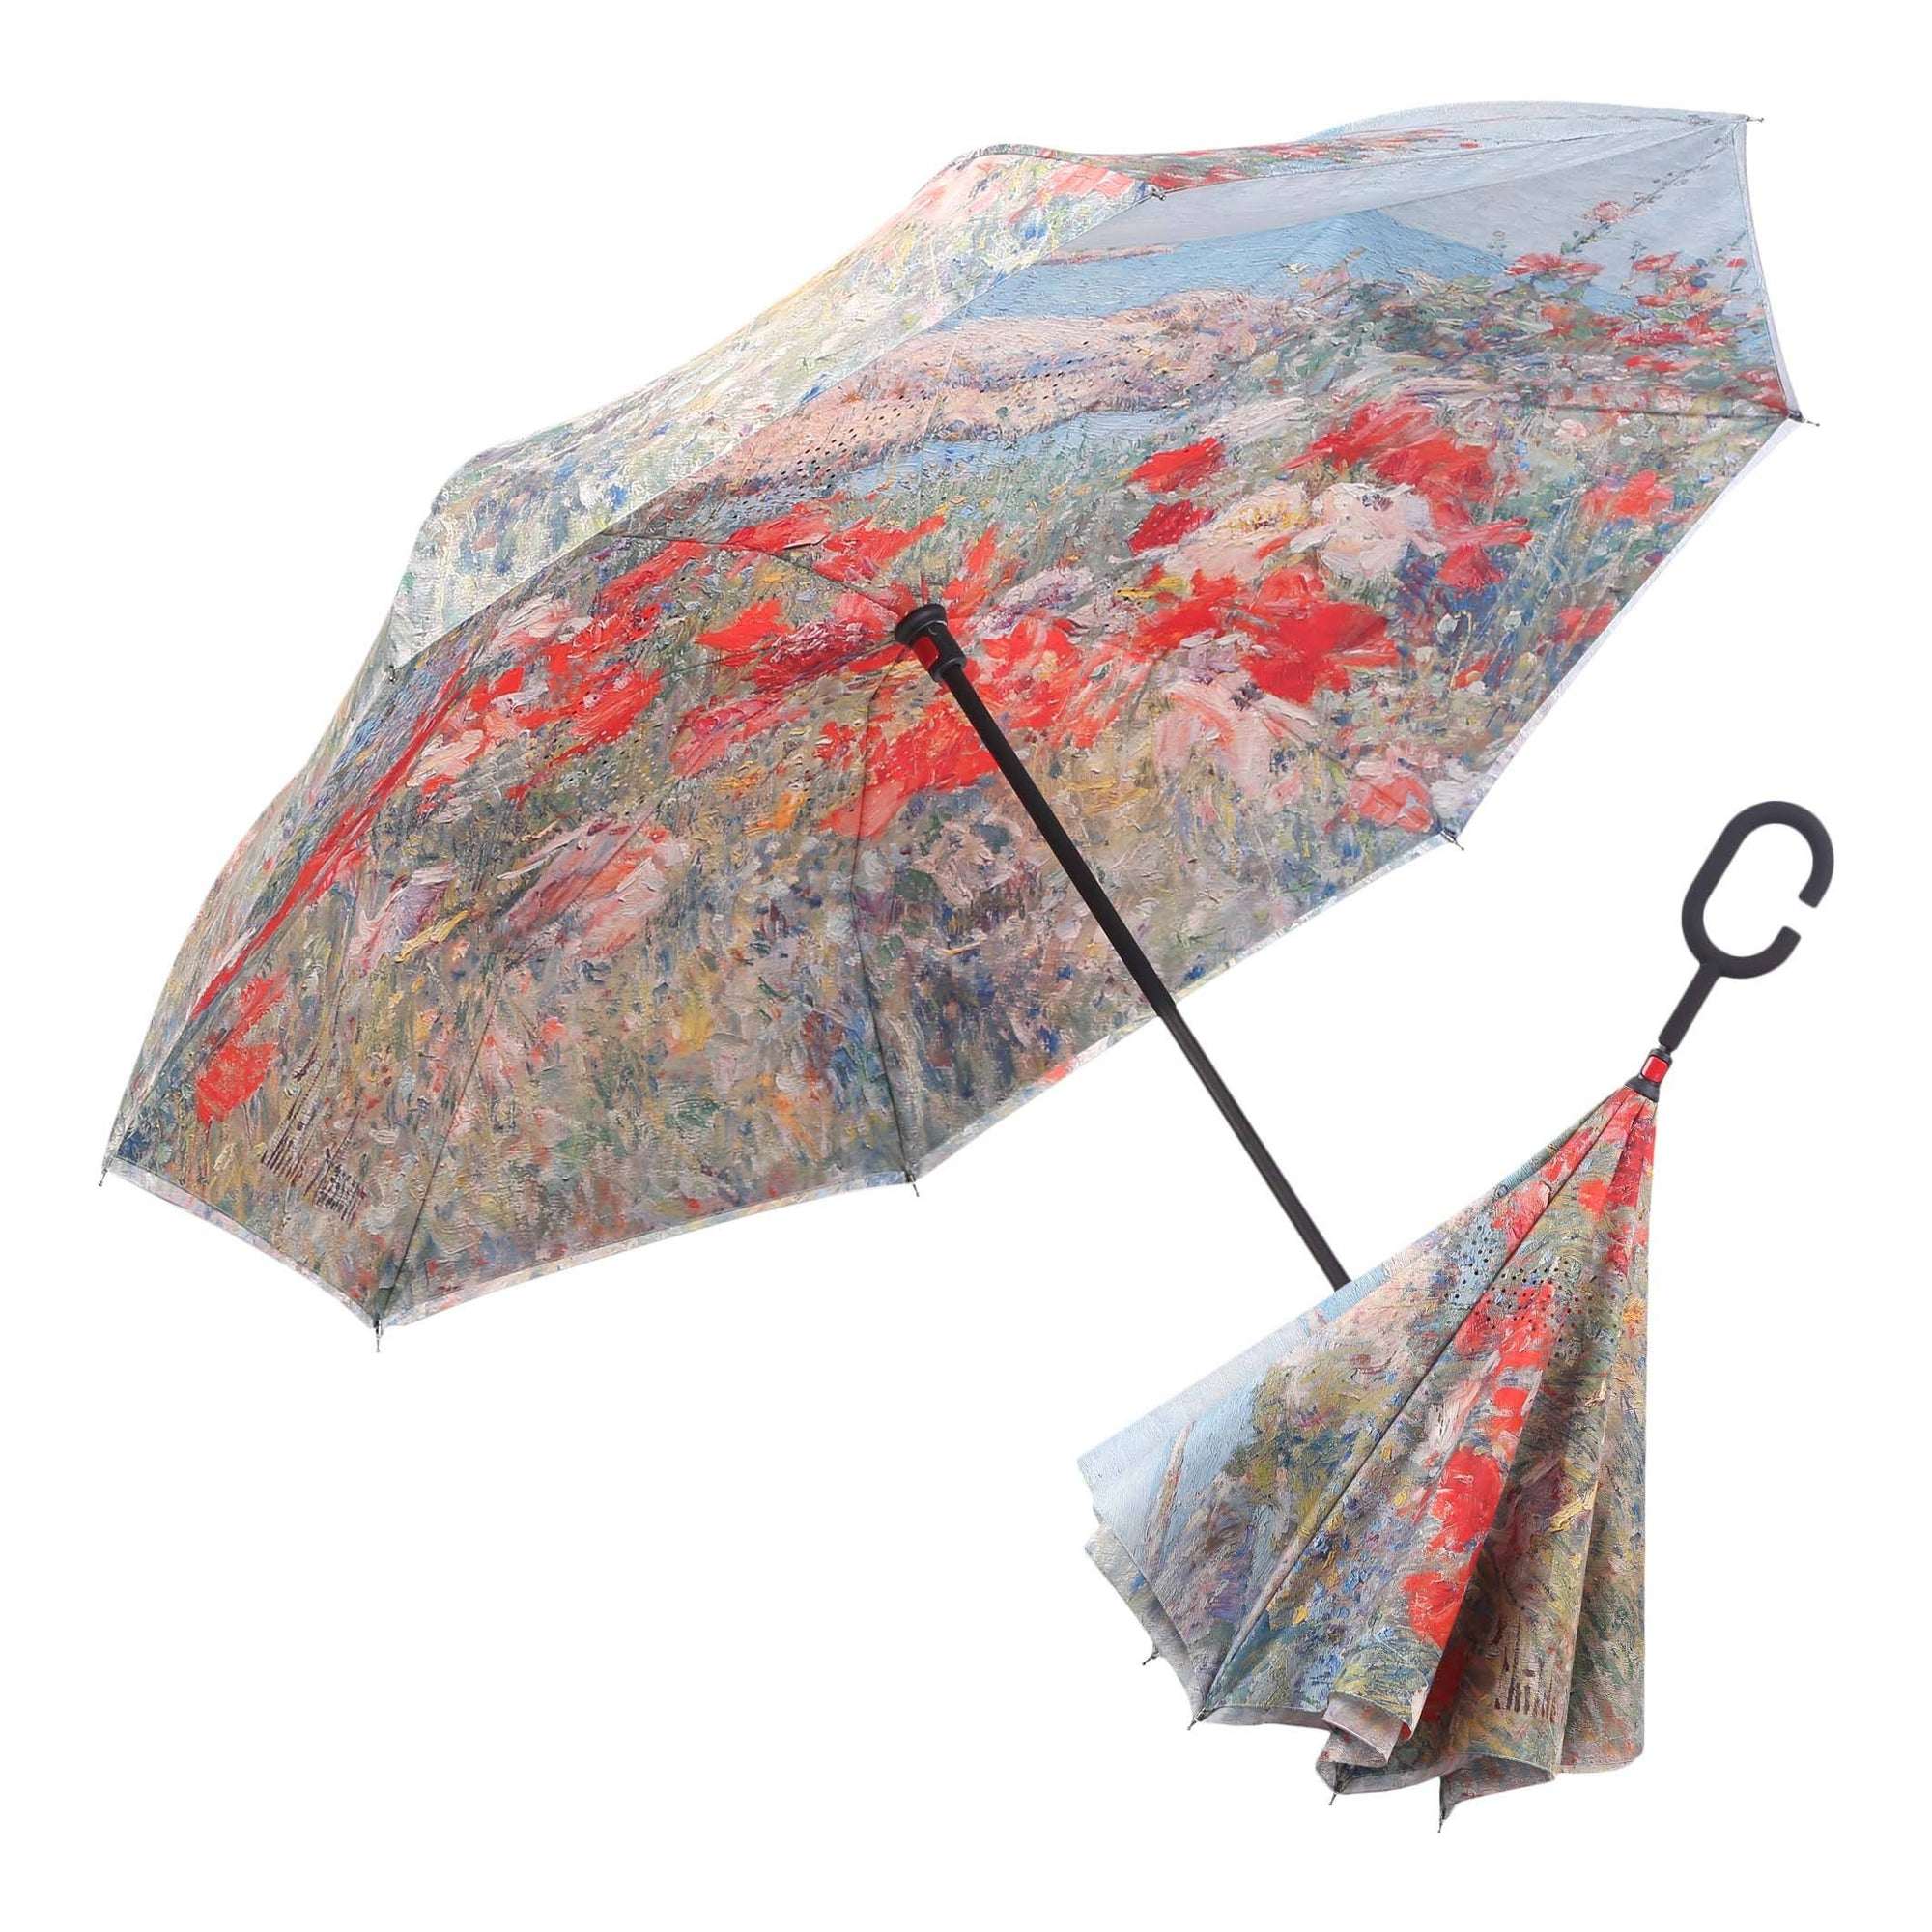 Image of a RainCaper Hassam Celia's Garden/Isles of Shoals inverted umbrella shown both open and closed. When open, the top is Hassam Celia's Garden and the interior features the Isles of Shoals print